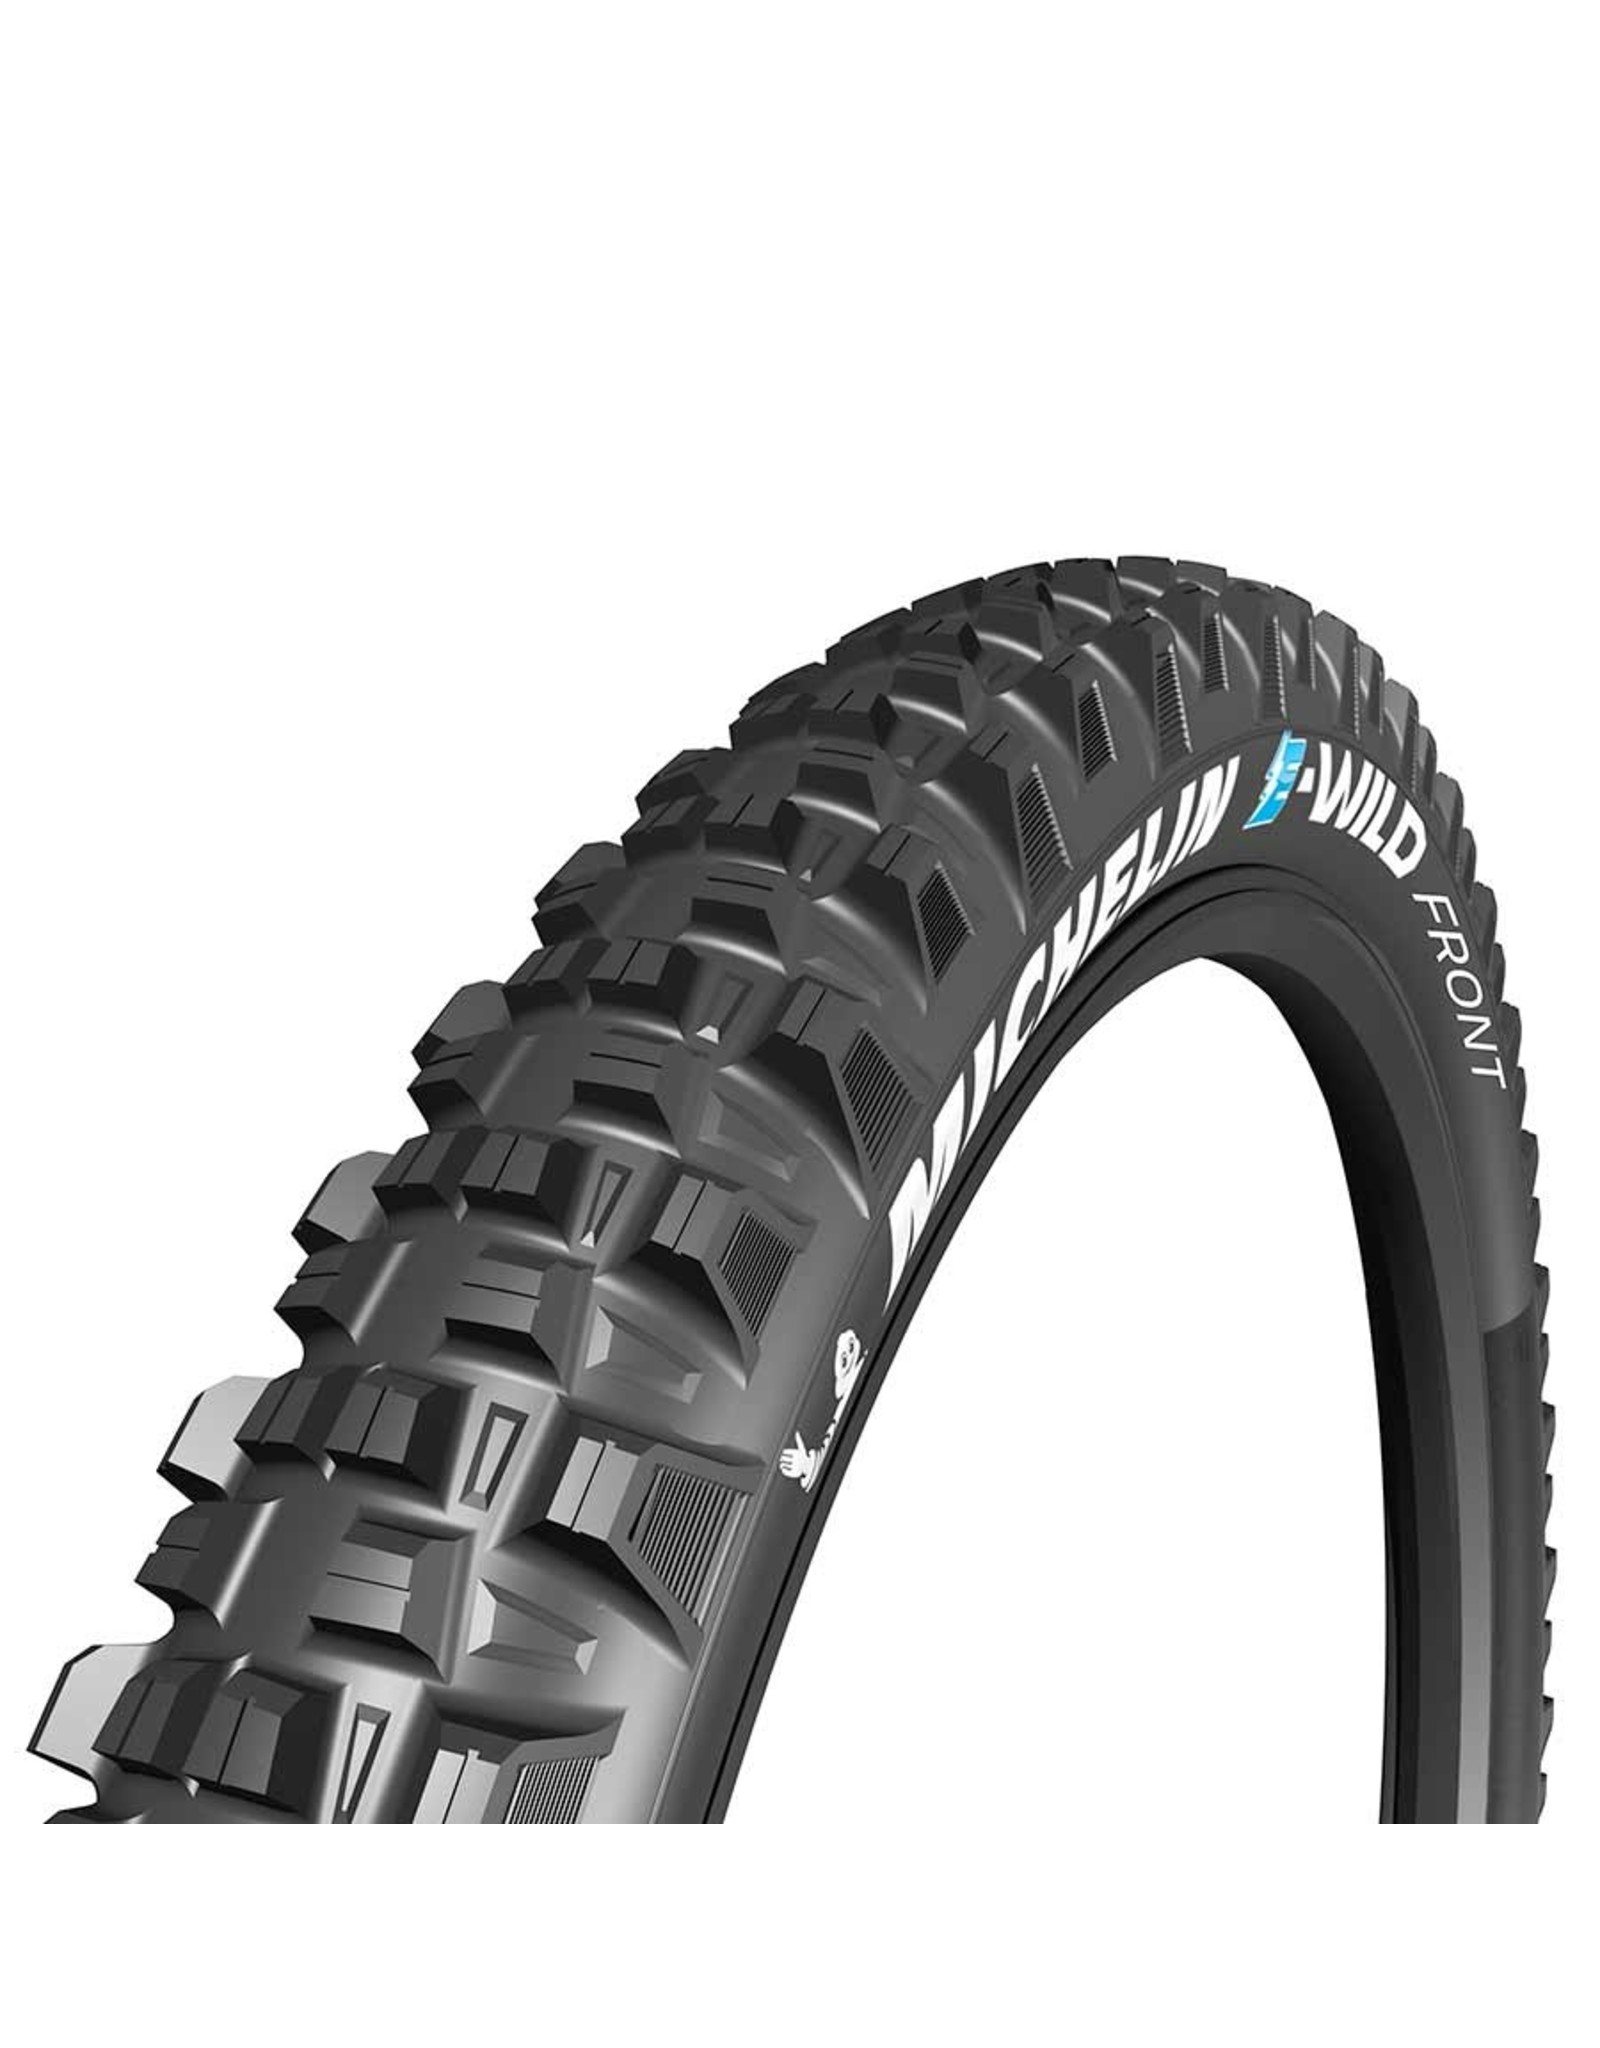 Michelin, E-Wild Front, Tire, 27.5''x2.80, Folding, Tubeless Ready, E-GUM-X, GravityShield, 3x60TPI, Black